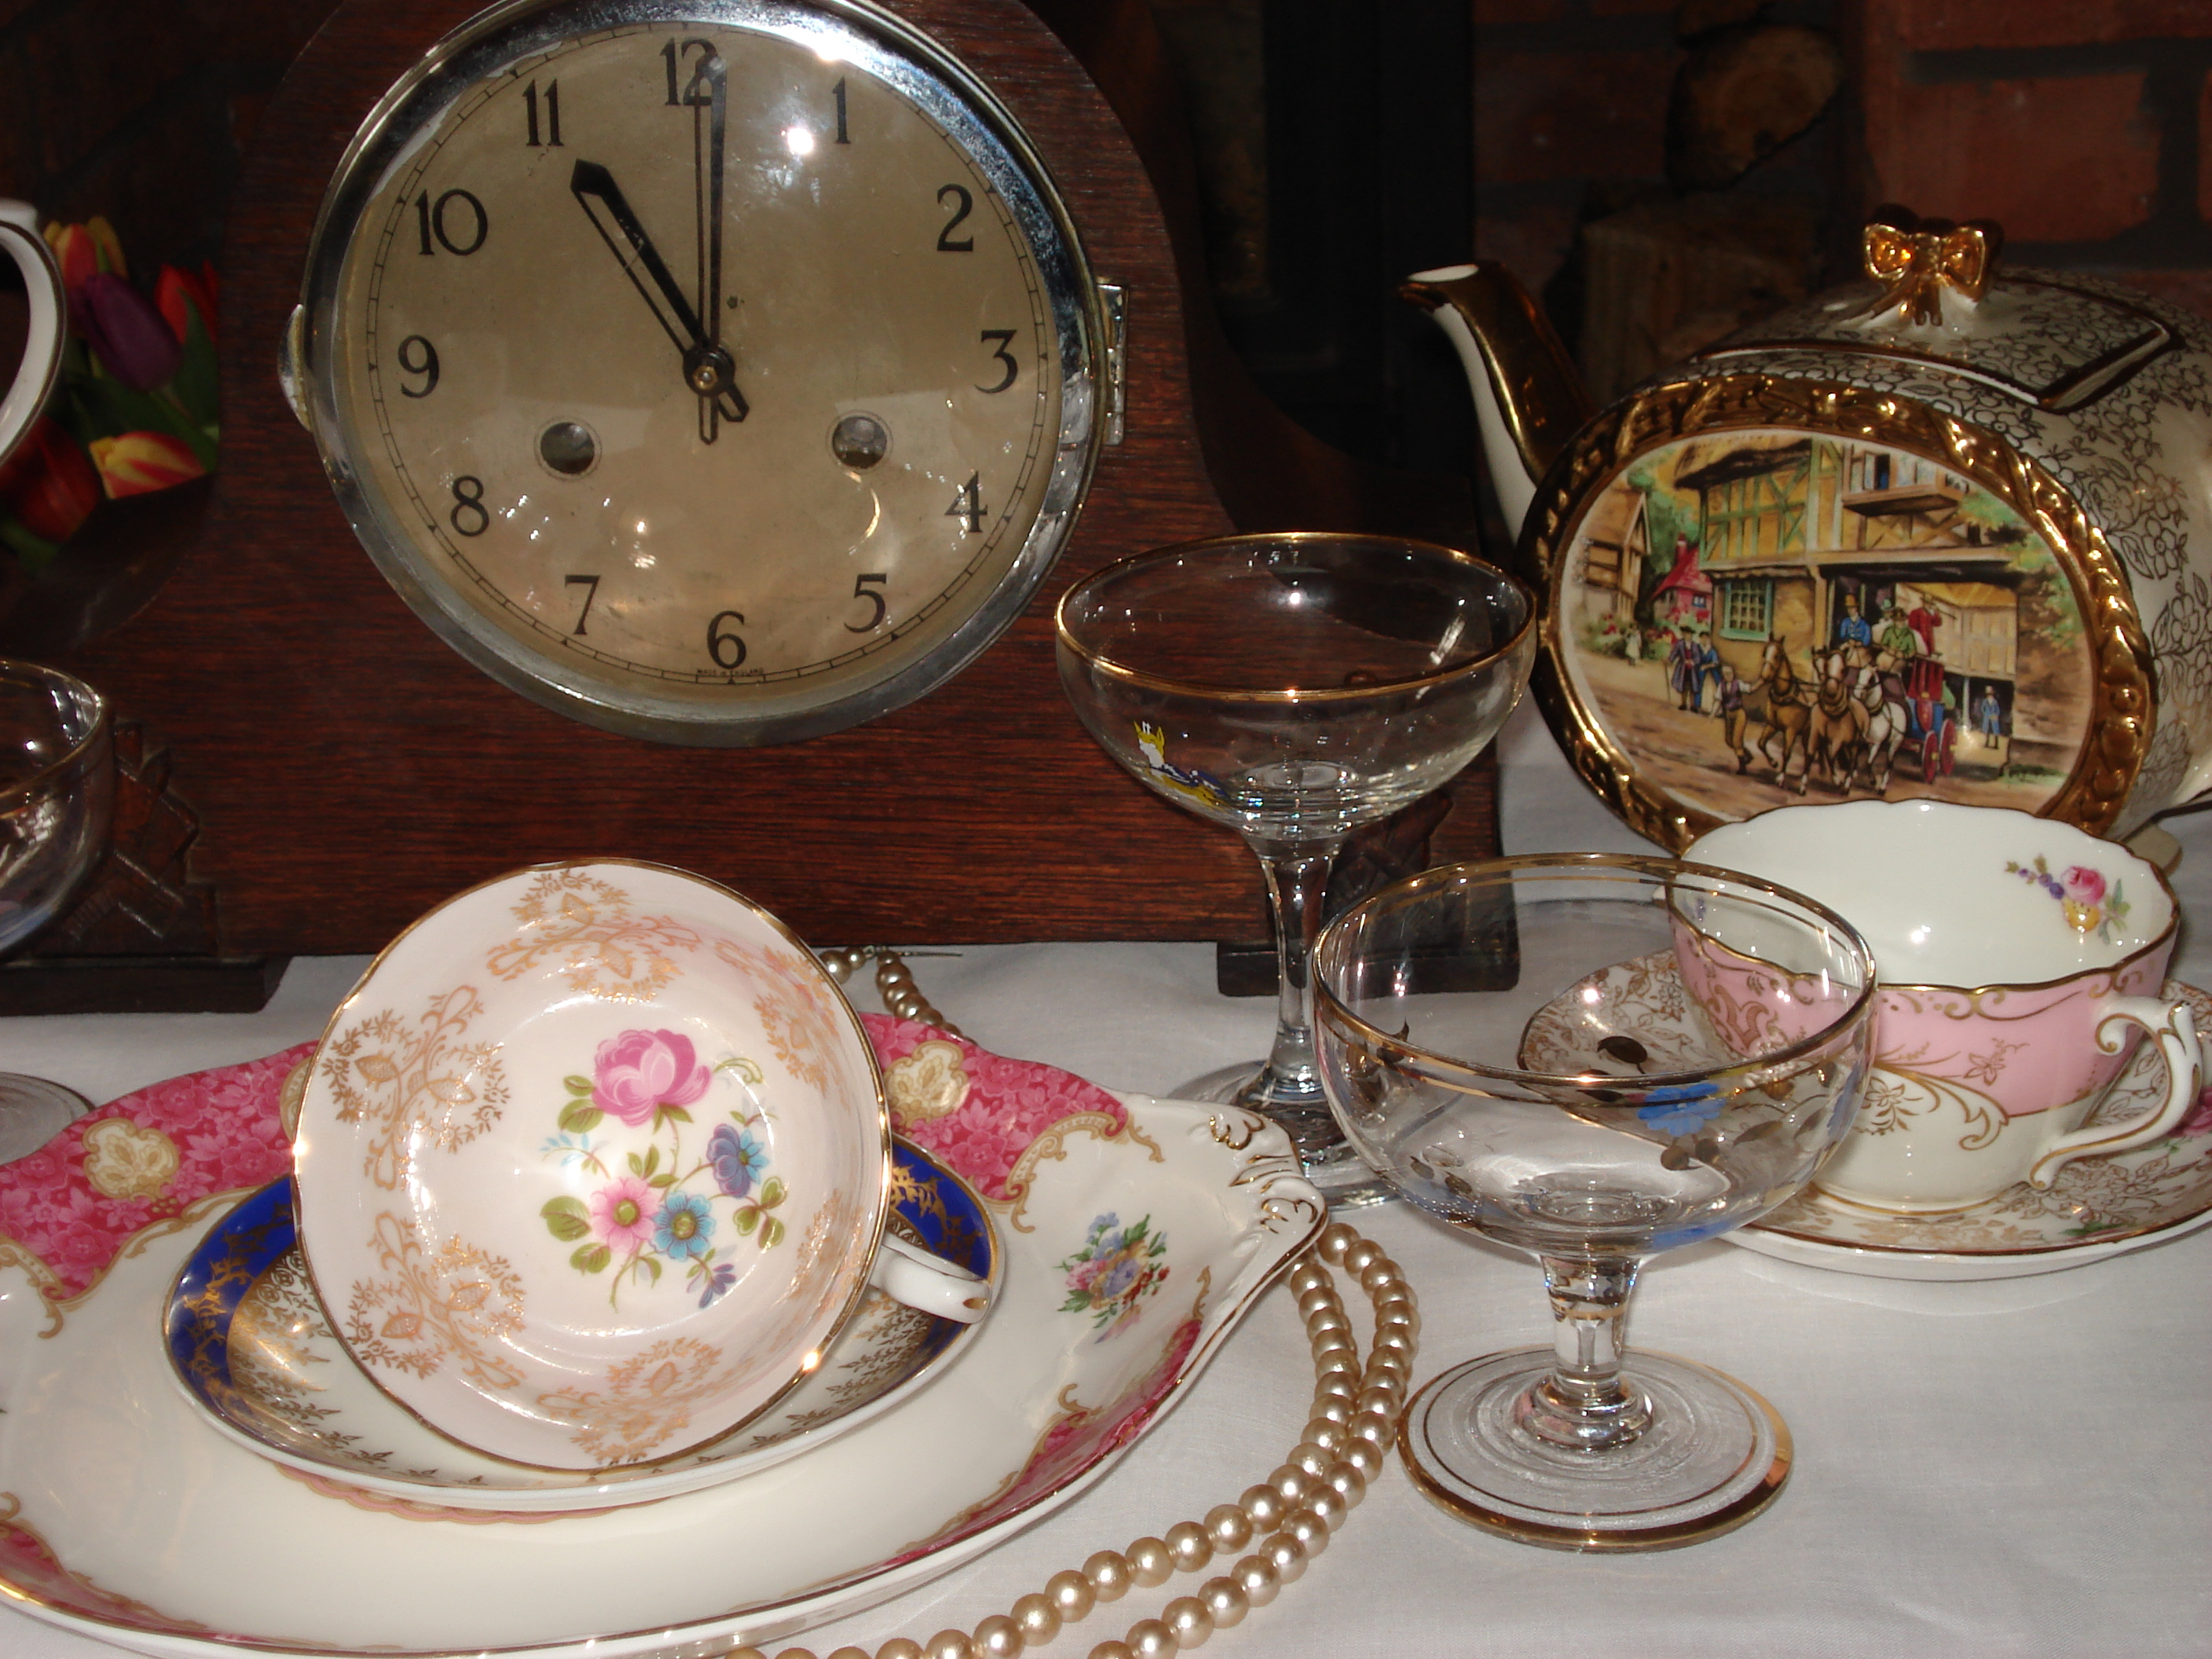 Time for your vintage tea party